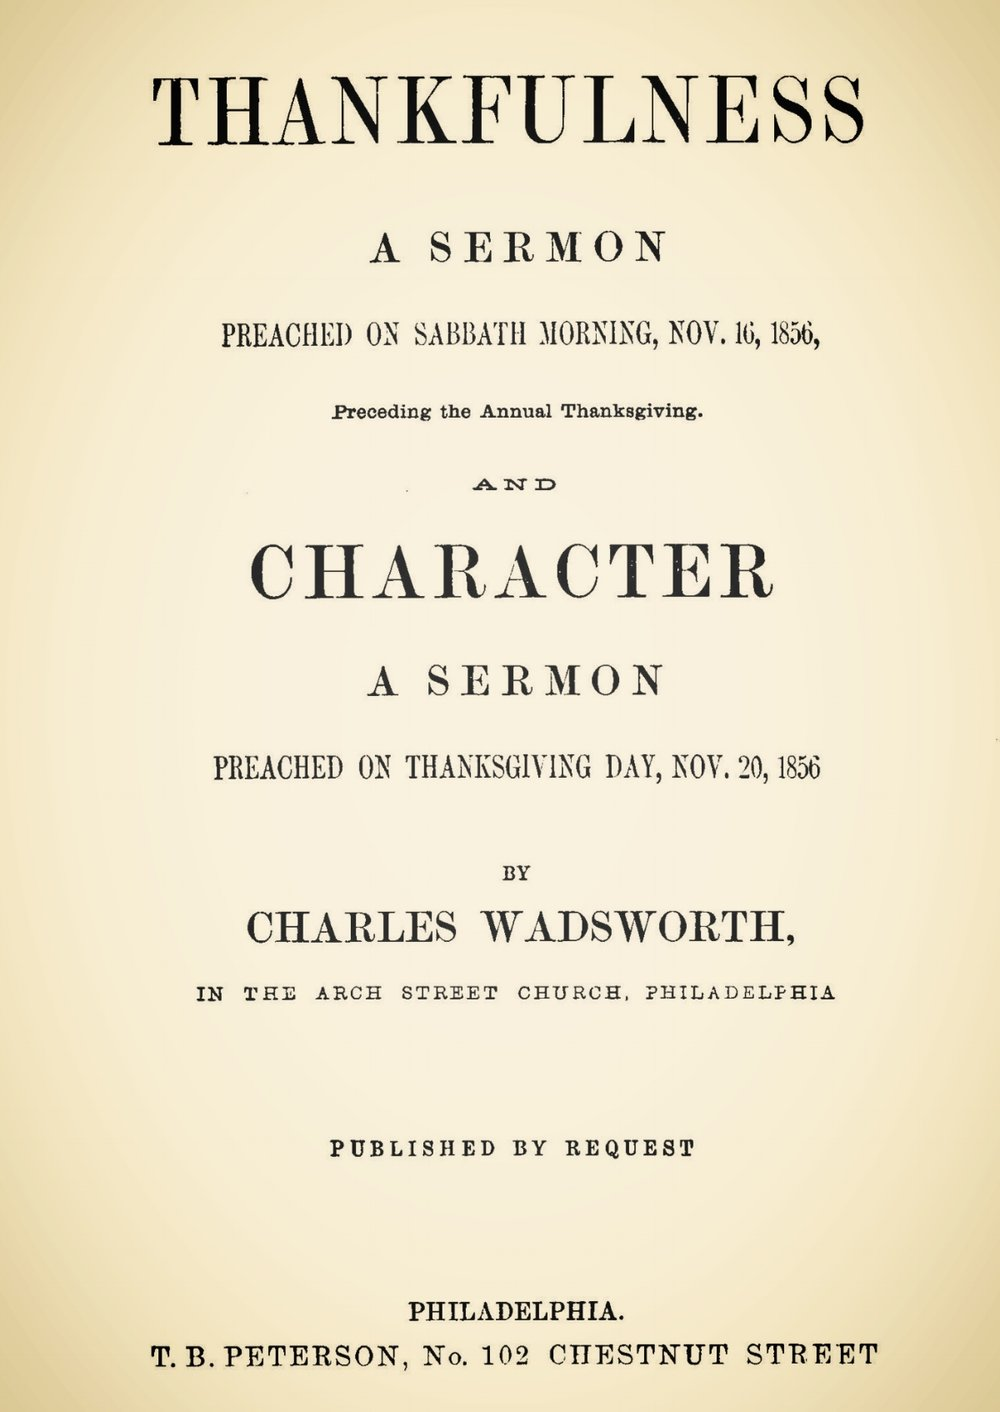 Wadsworth, Charles, Thankfulness and Character Sermons Title Page.jpg